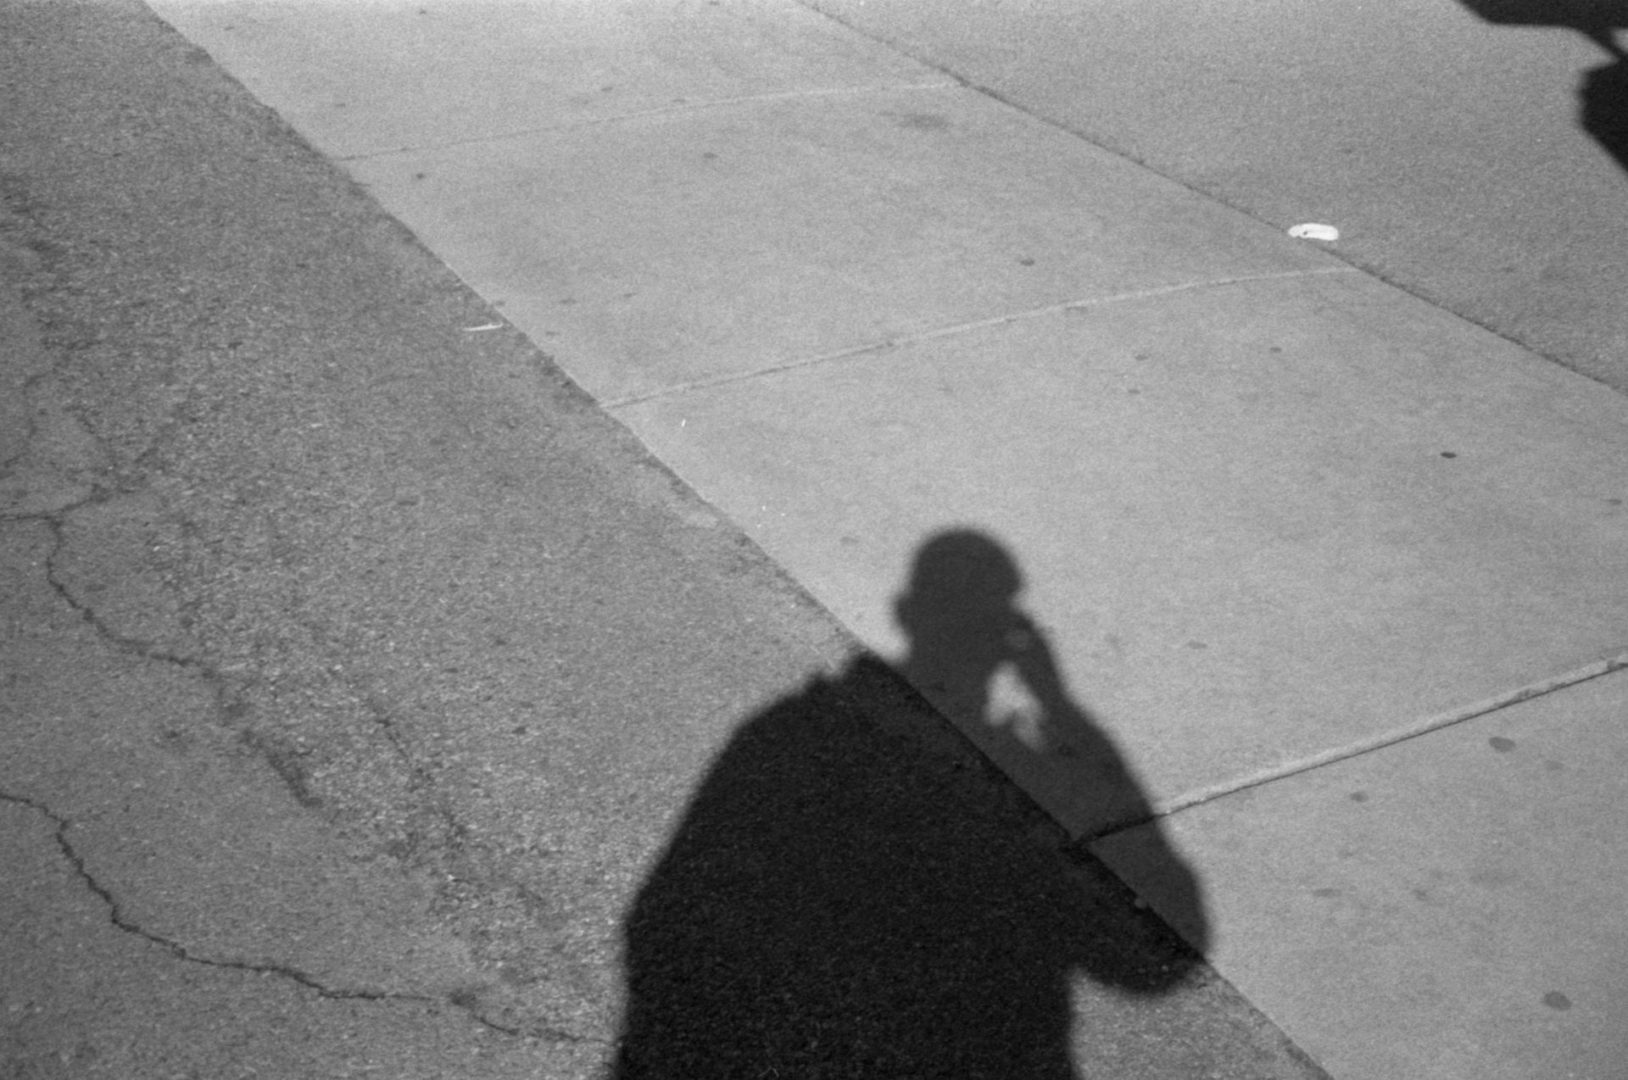 concrete slabs with a person's shadow